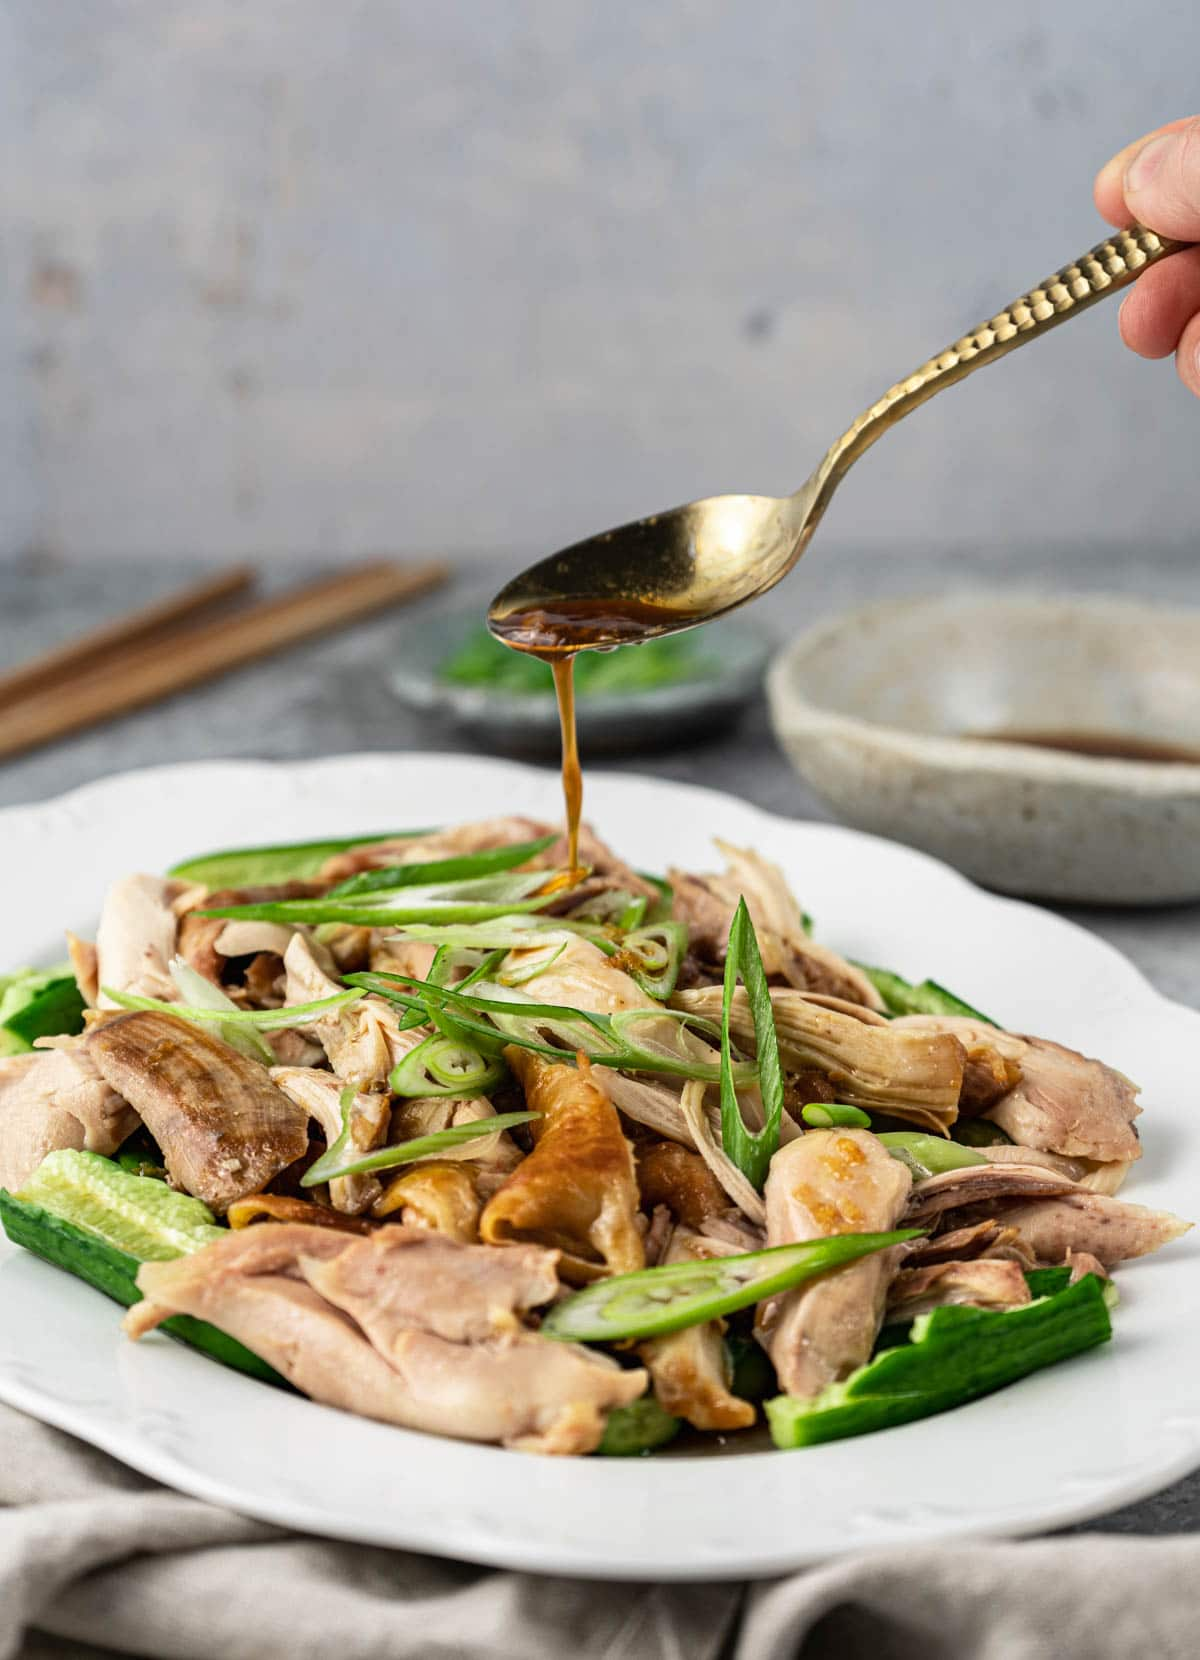 Drizzle dressing on Shandong chicken.